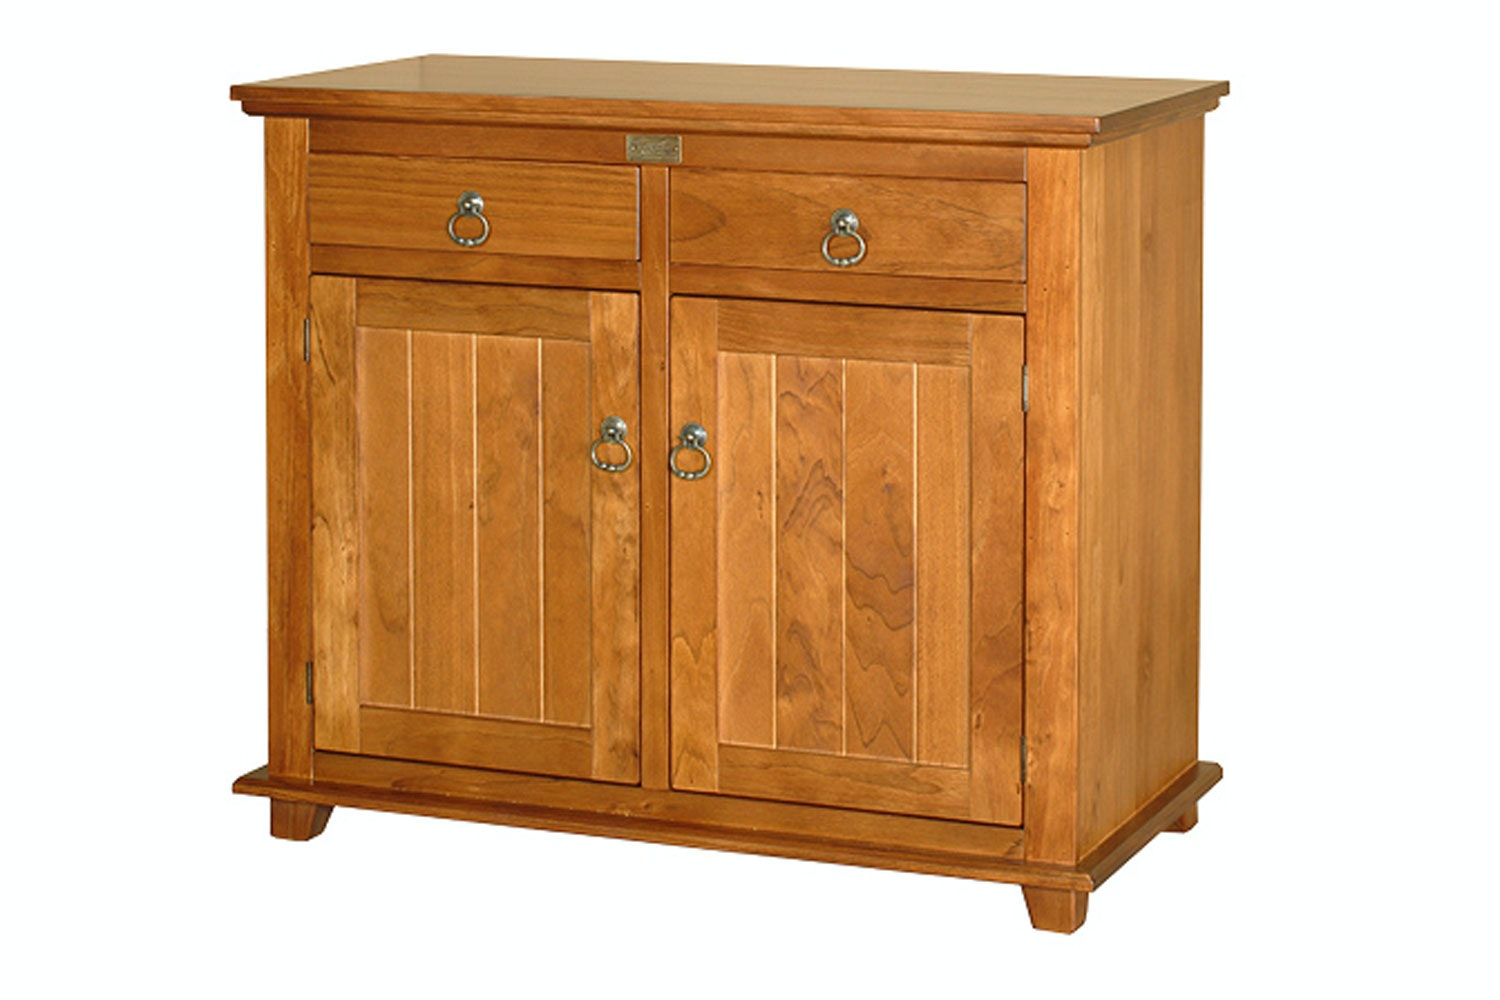 Ferngrove 2-Drawer Buffet by Coastwood